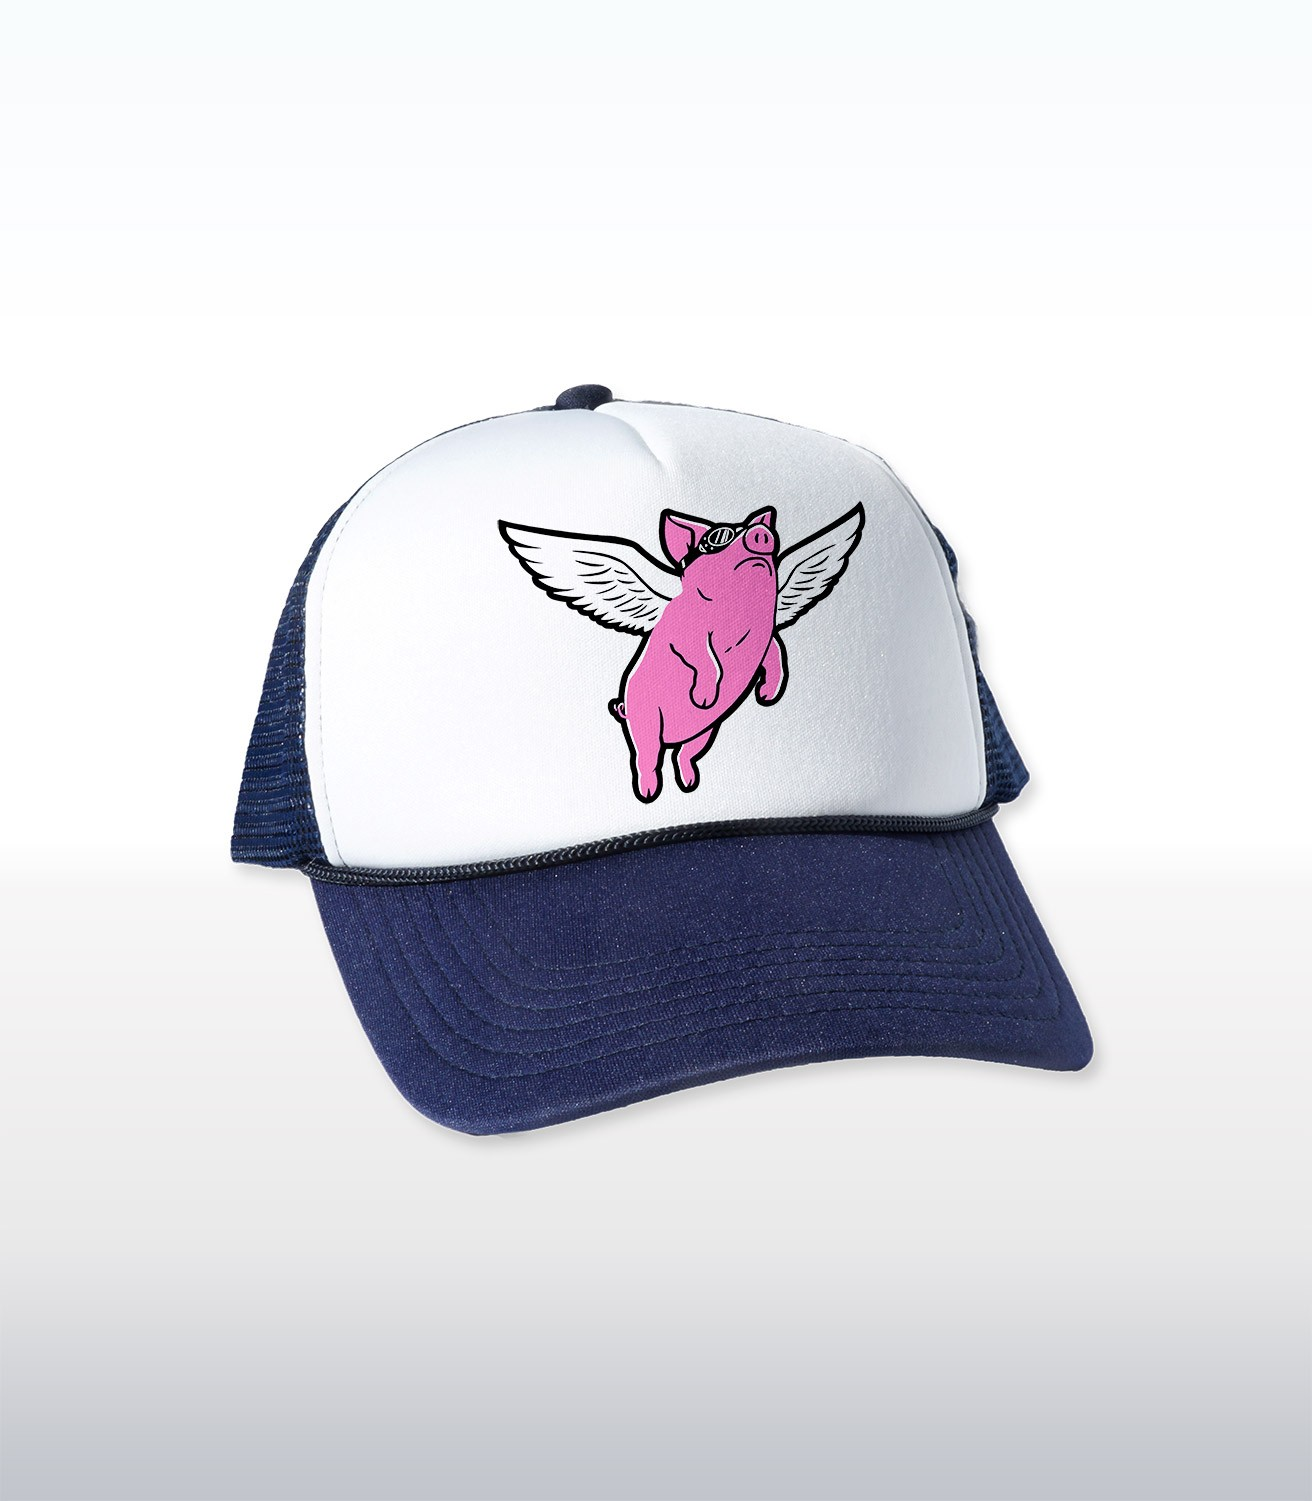 Flying Pig Cap Headline Shirts